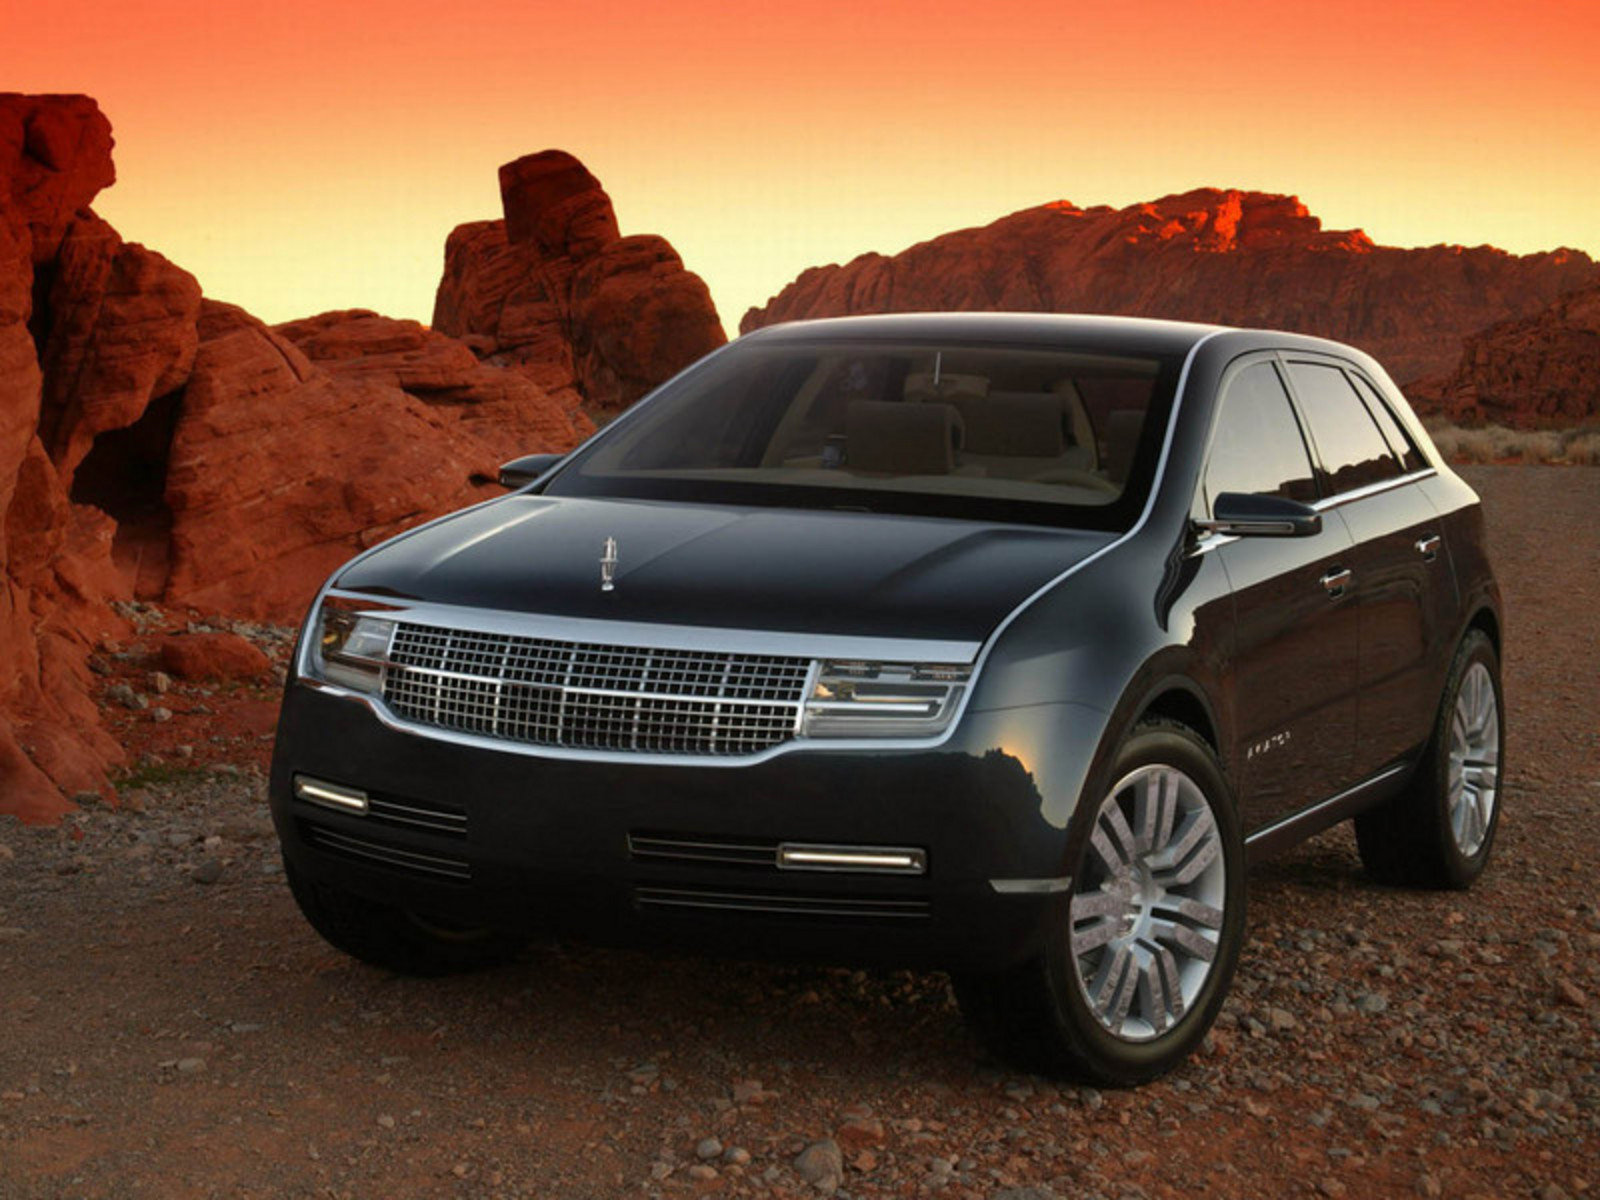 Lincoln Town Car 2017 >> 2005 Lincoln Aviator Review - Top Speed